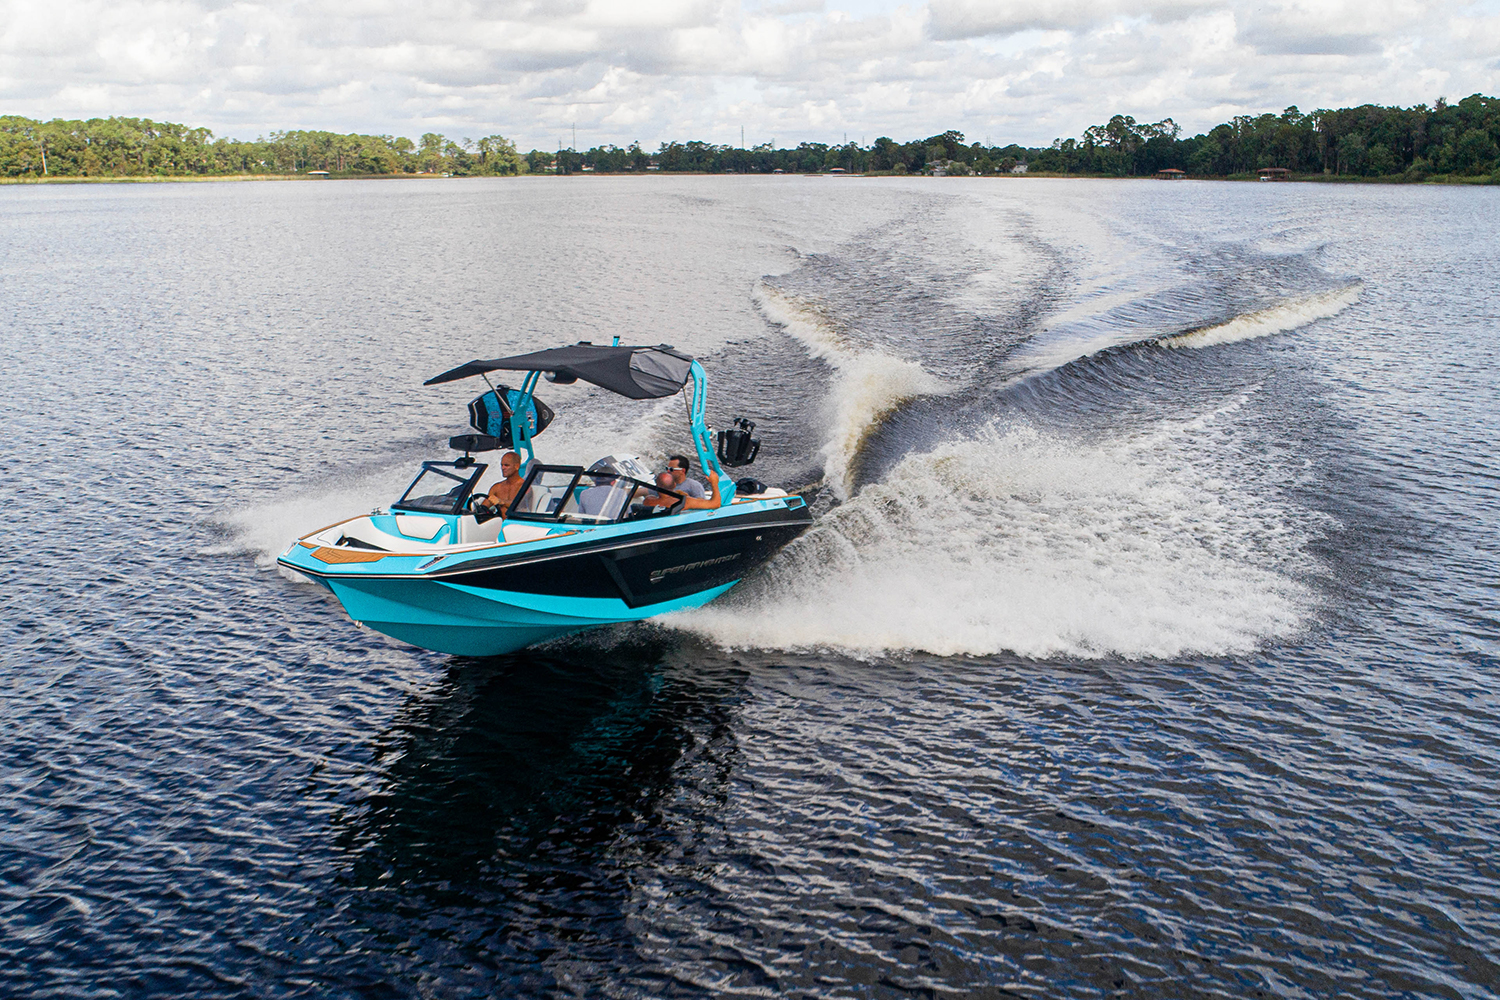 The Super Air Nautique GS22E electric wakesurfing and wakeboarding boat cruising on a lake. Correct Craft launched the all-electric towboat in 2020.